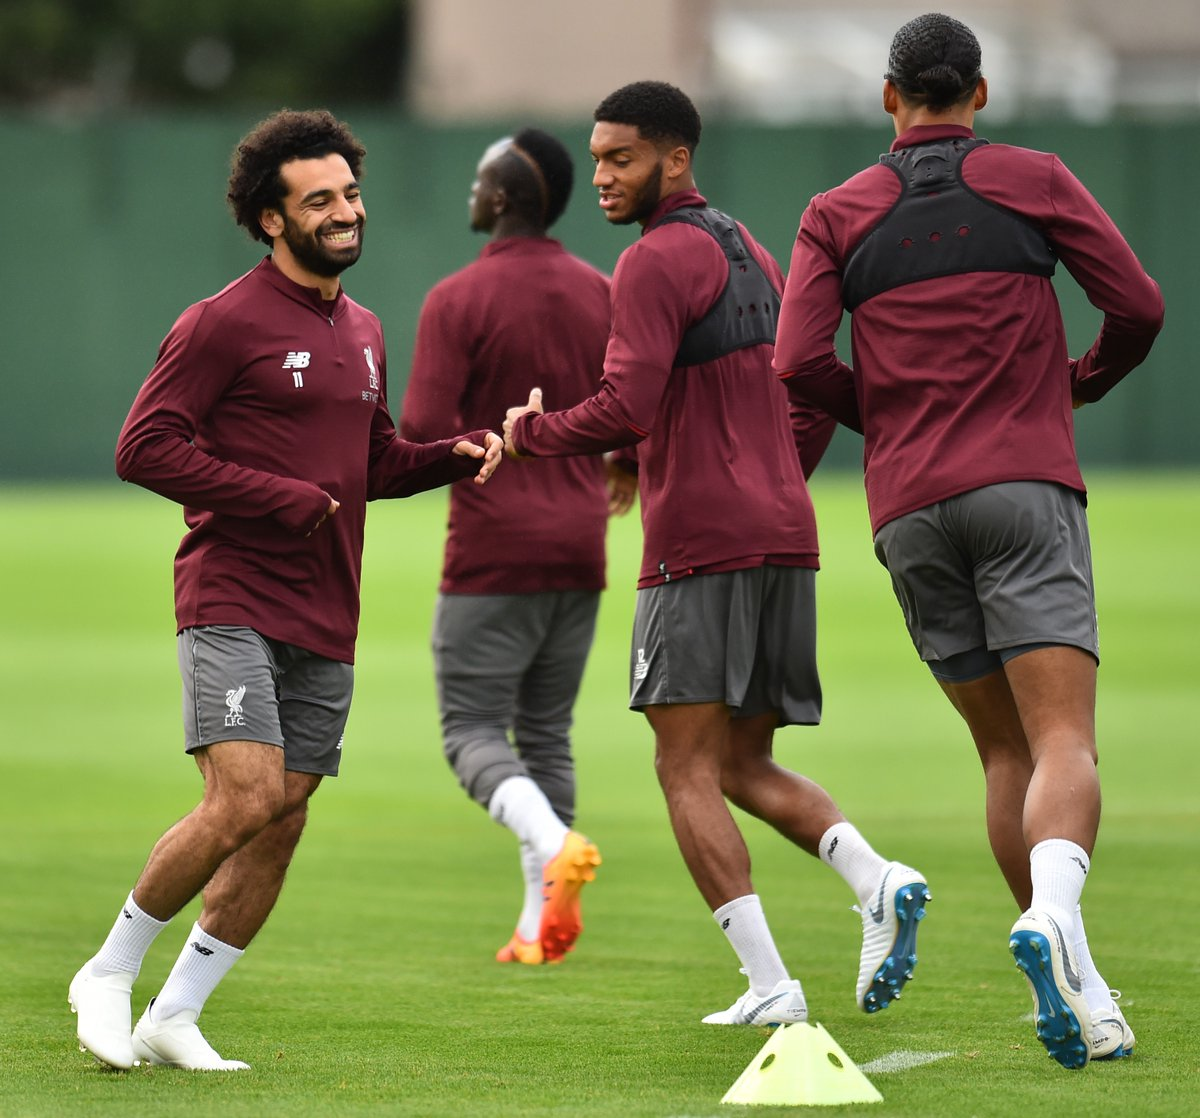 Psg Retain Champions League Favouritism Ahead Of: Explore Photo Gallery From Melwood Ahead Of Champions